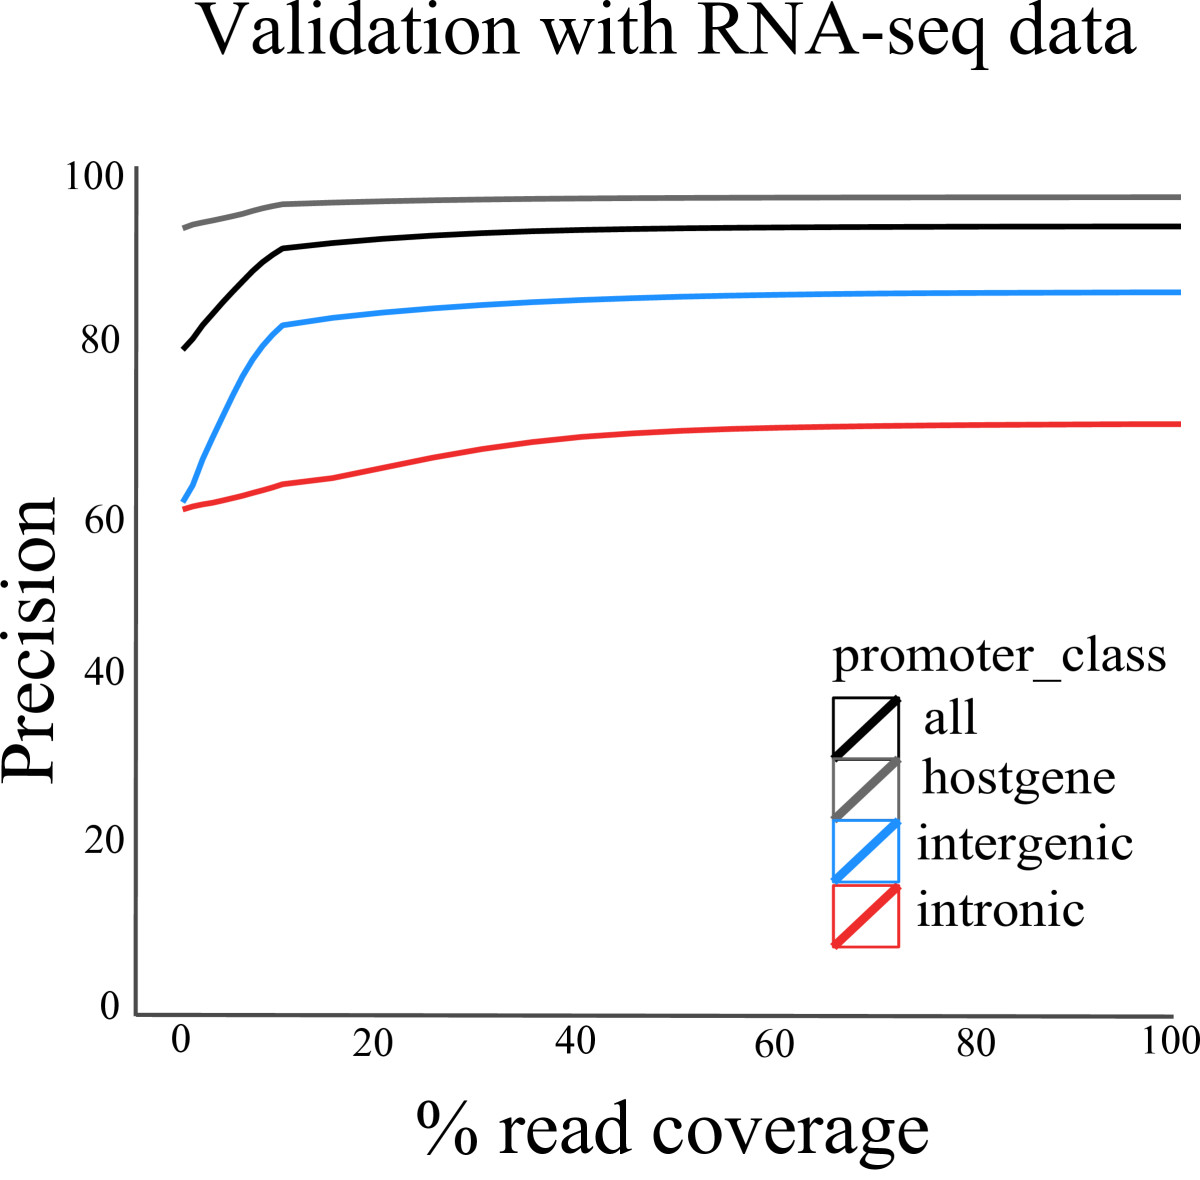 https://static-content.springer.com/image/art%3A10.1186%2Fgb-2013-14-8-r84/MediaObjects/13059_2013_Article_3166_Fig4_HTML.jpg